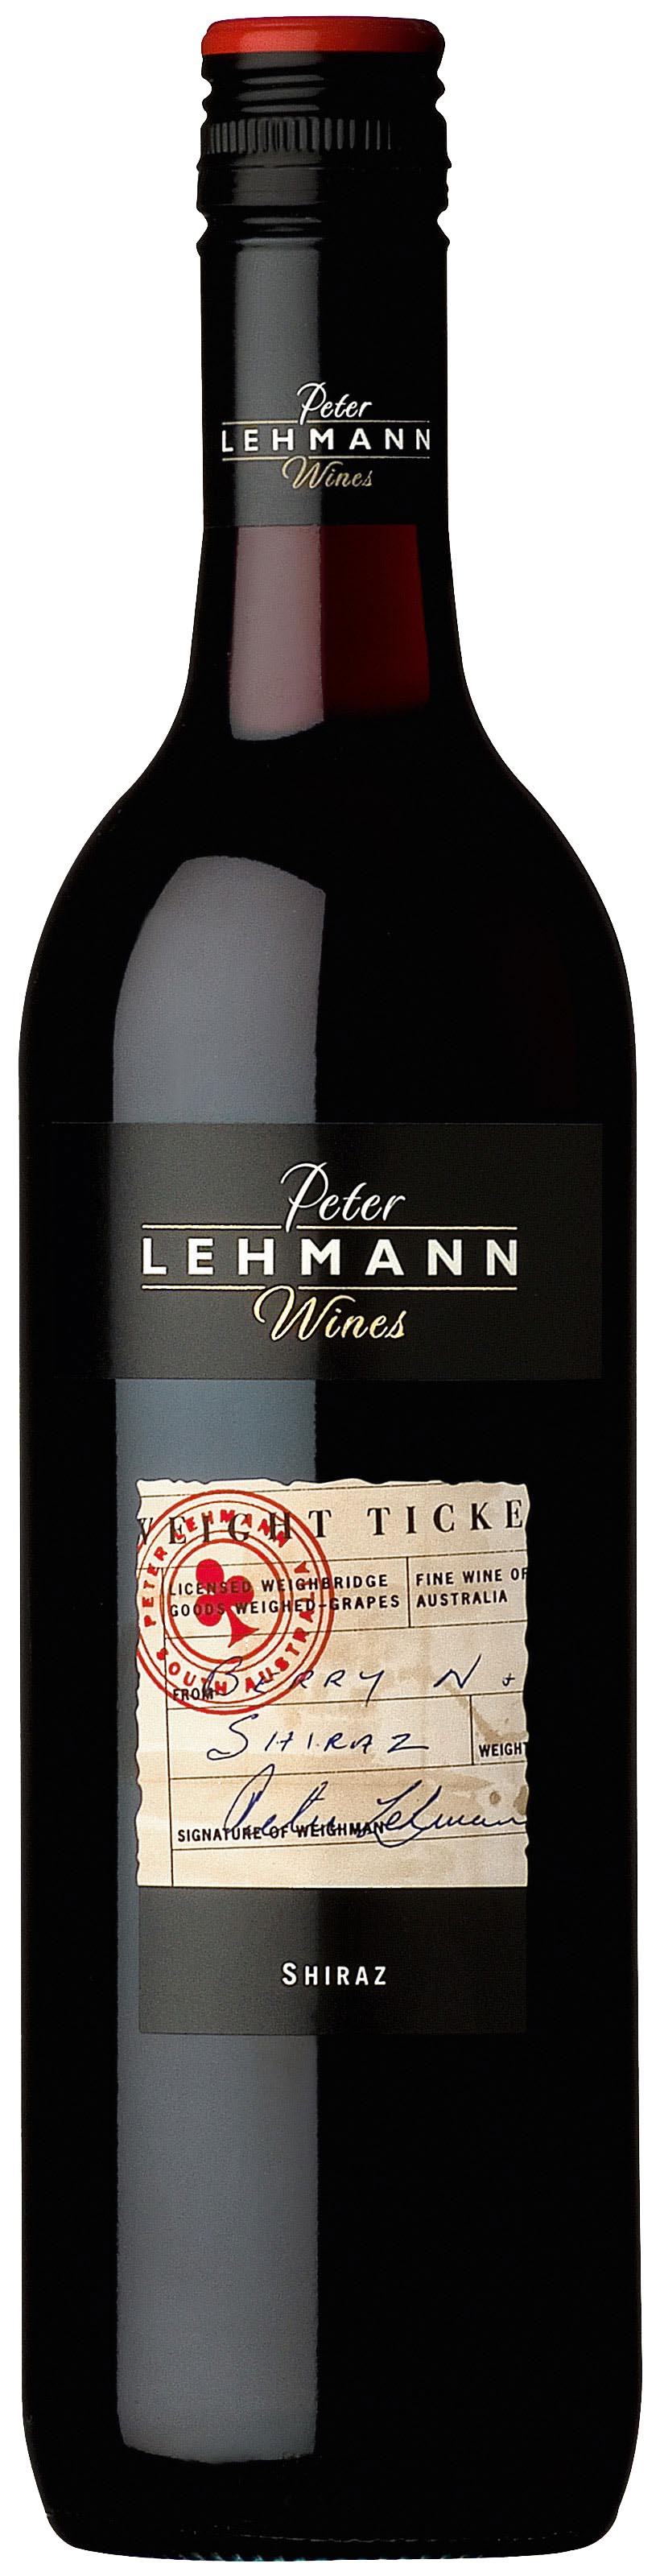 Weighbridge Shiraz ( Peter Lehmann ) 2010